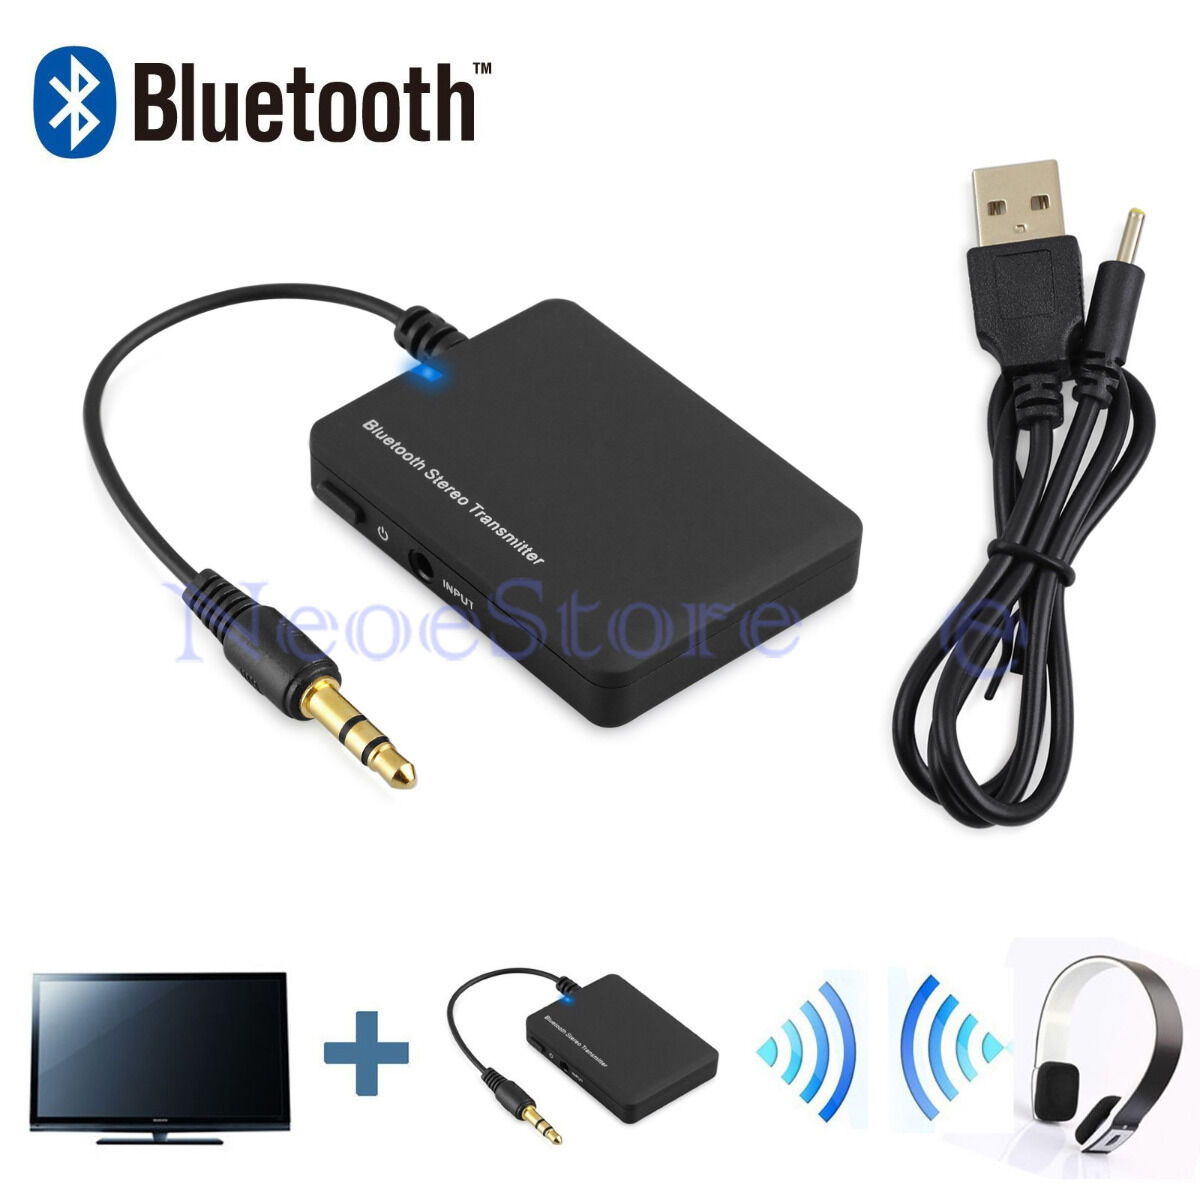 BLUETOOTH Audio Music Transmitter 3.5mm Jack A2DP Stereo Adapter For PC TV MP3 - £12.95 ...